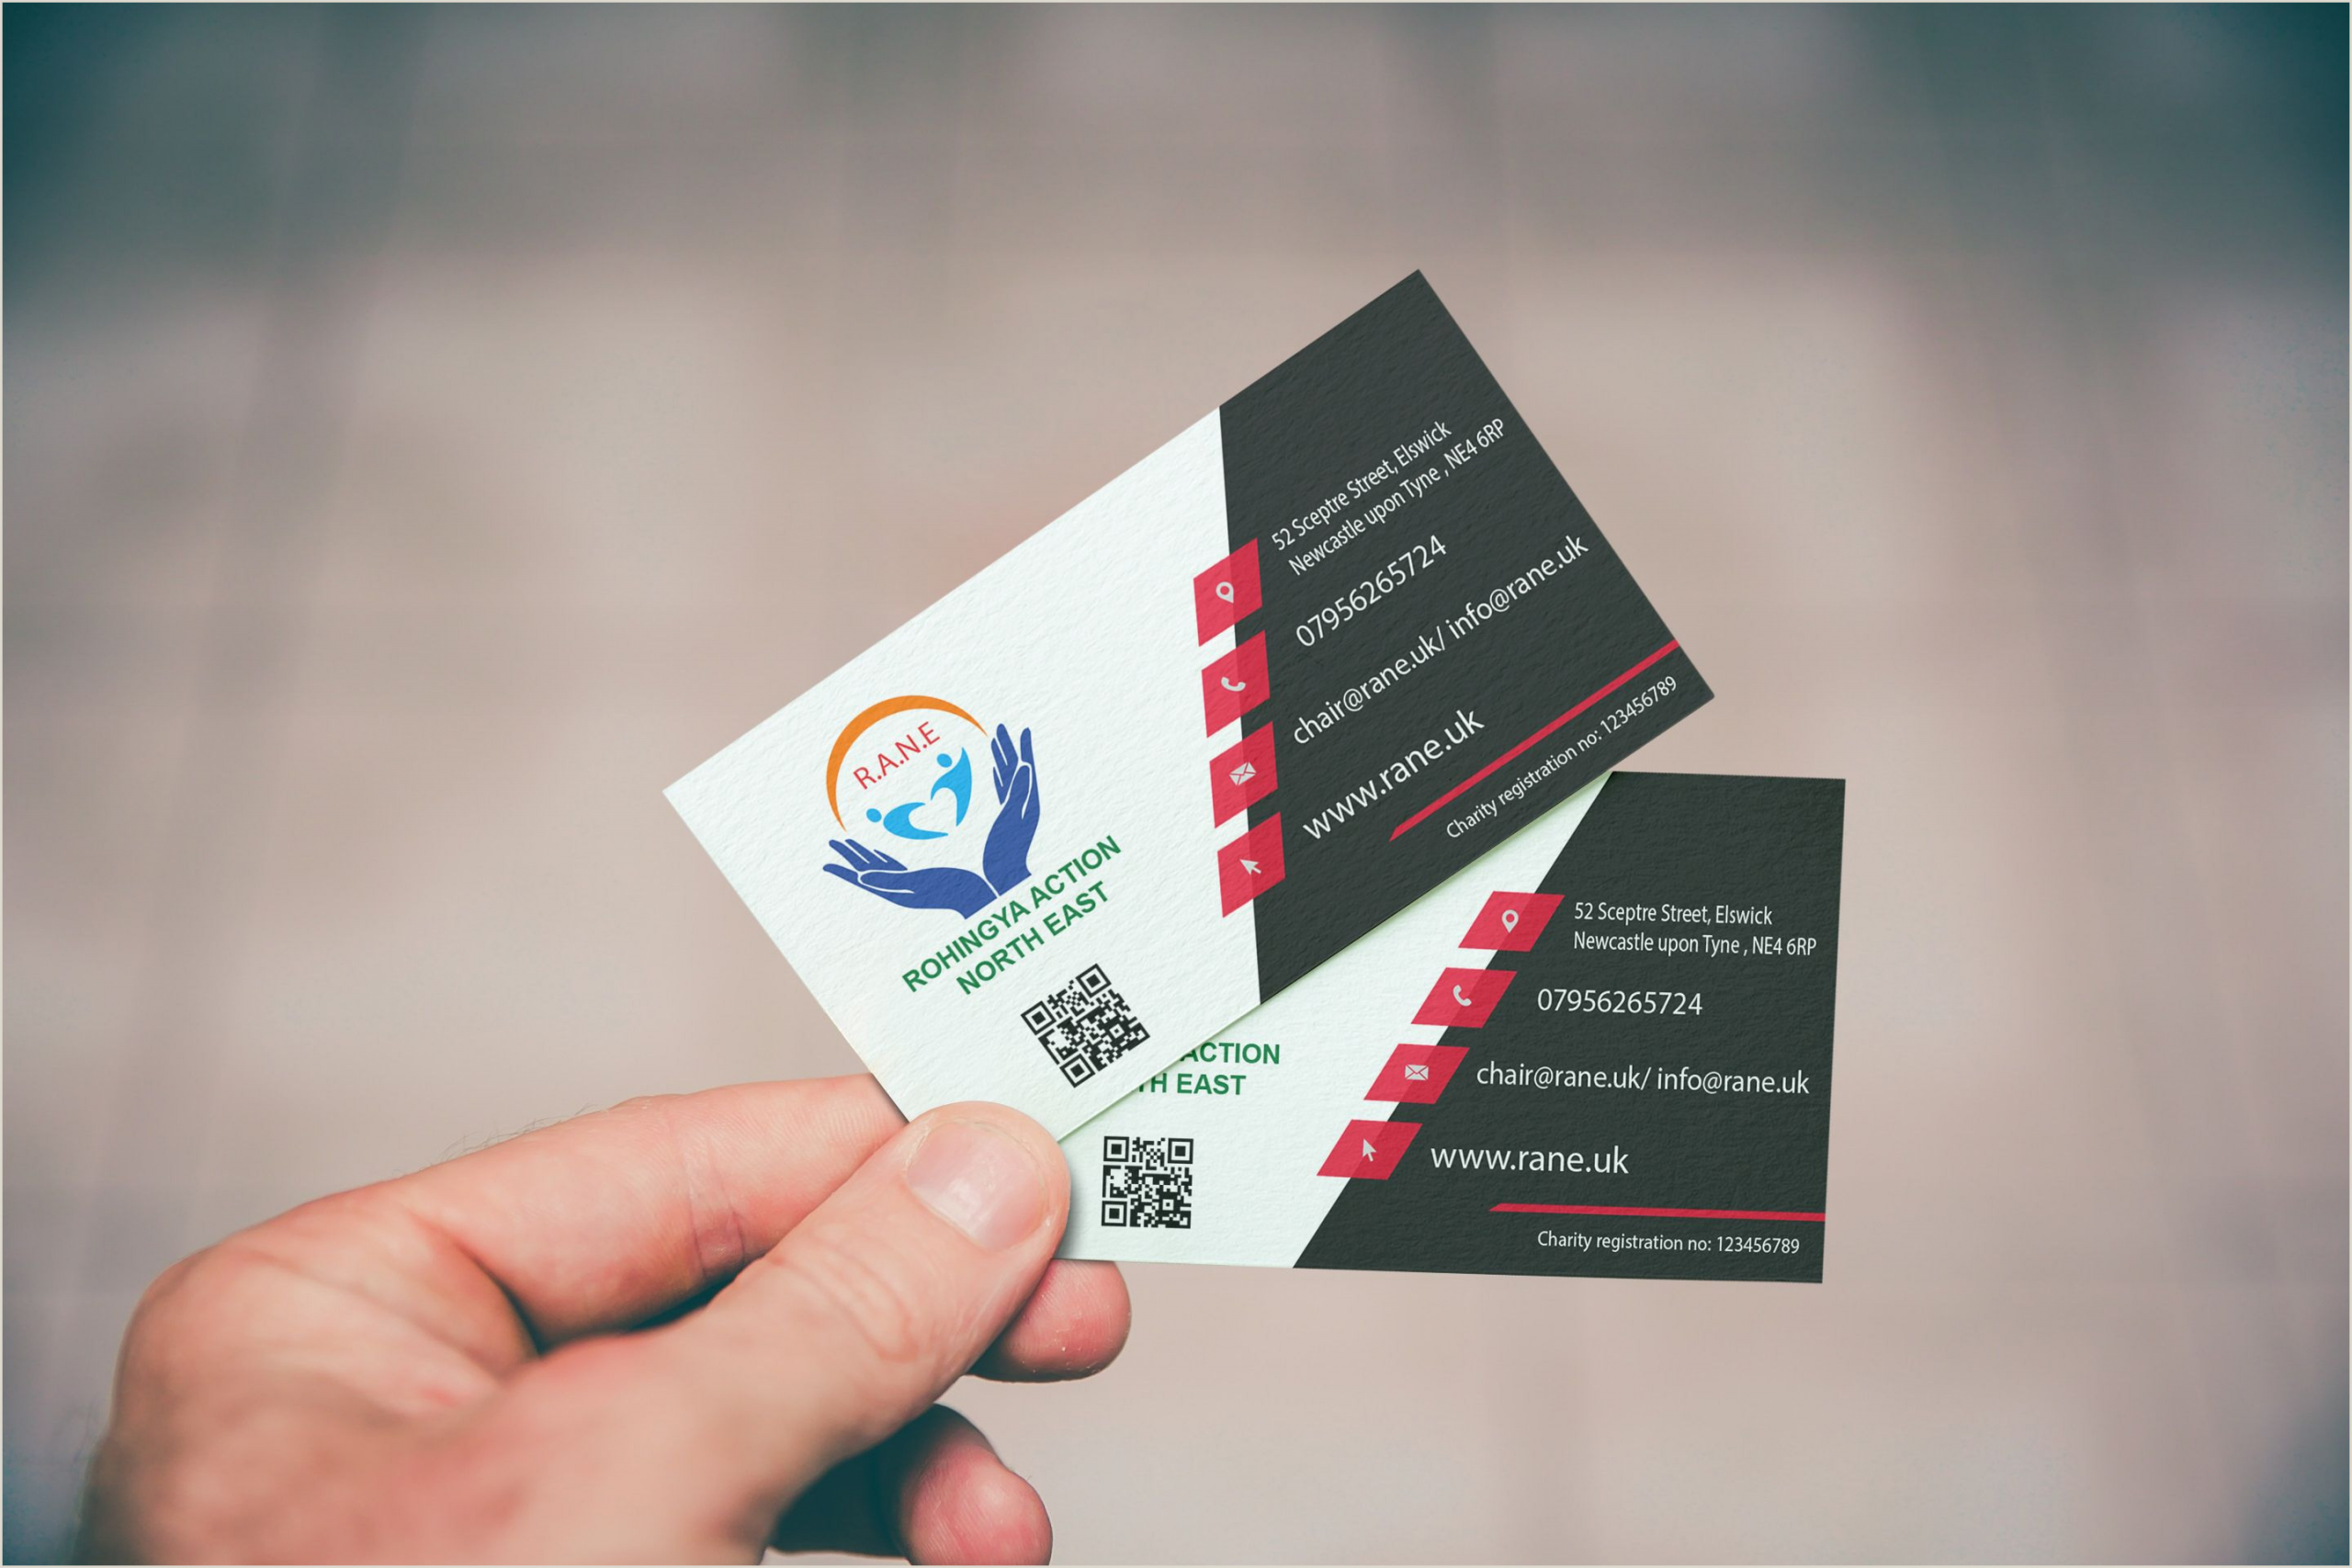 How To Make A Professional Business Card Hi There I M A Professional Graphic Designer I Have 4